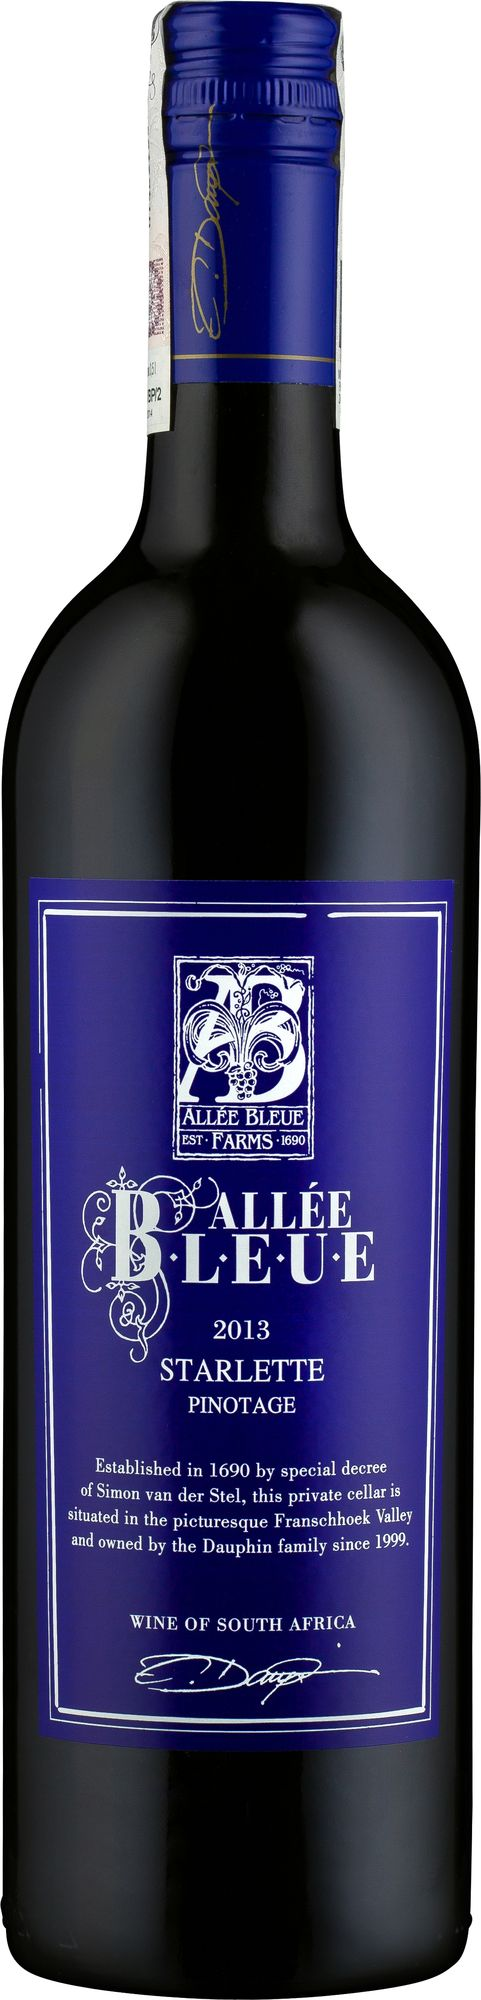 Wino Allée Bleue Starlette Pinotage Franschhoek WO